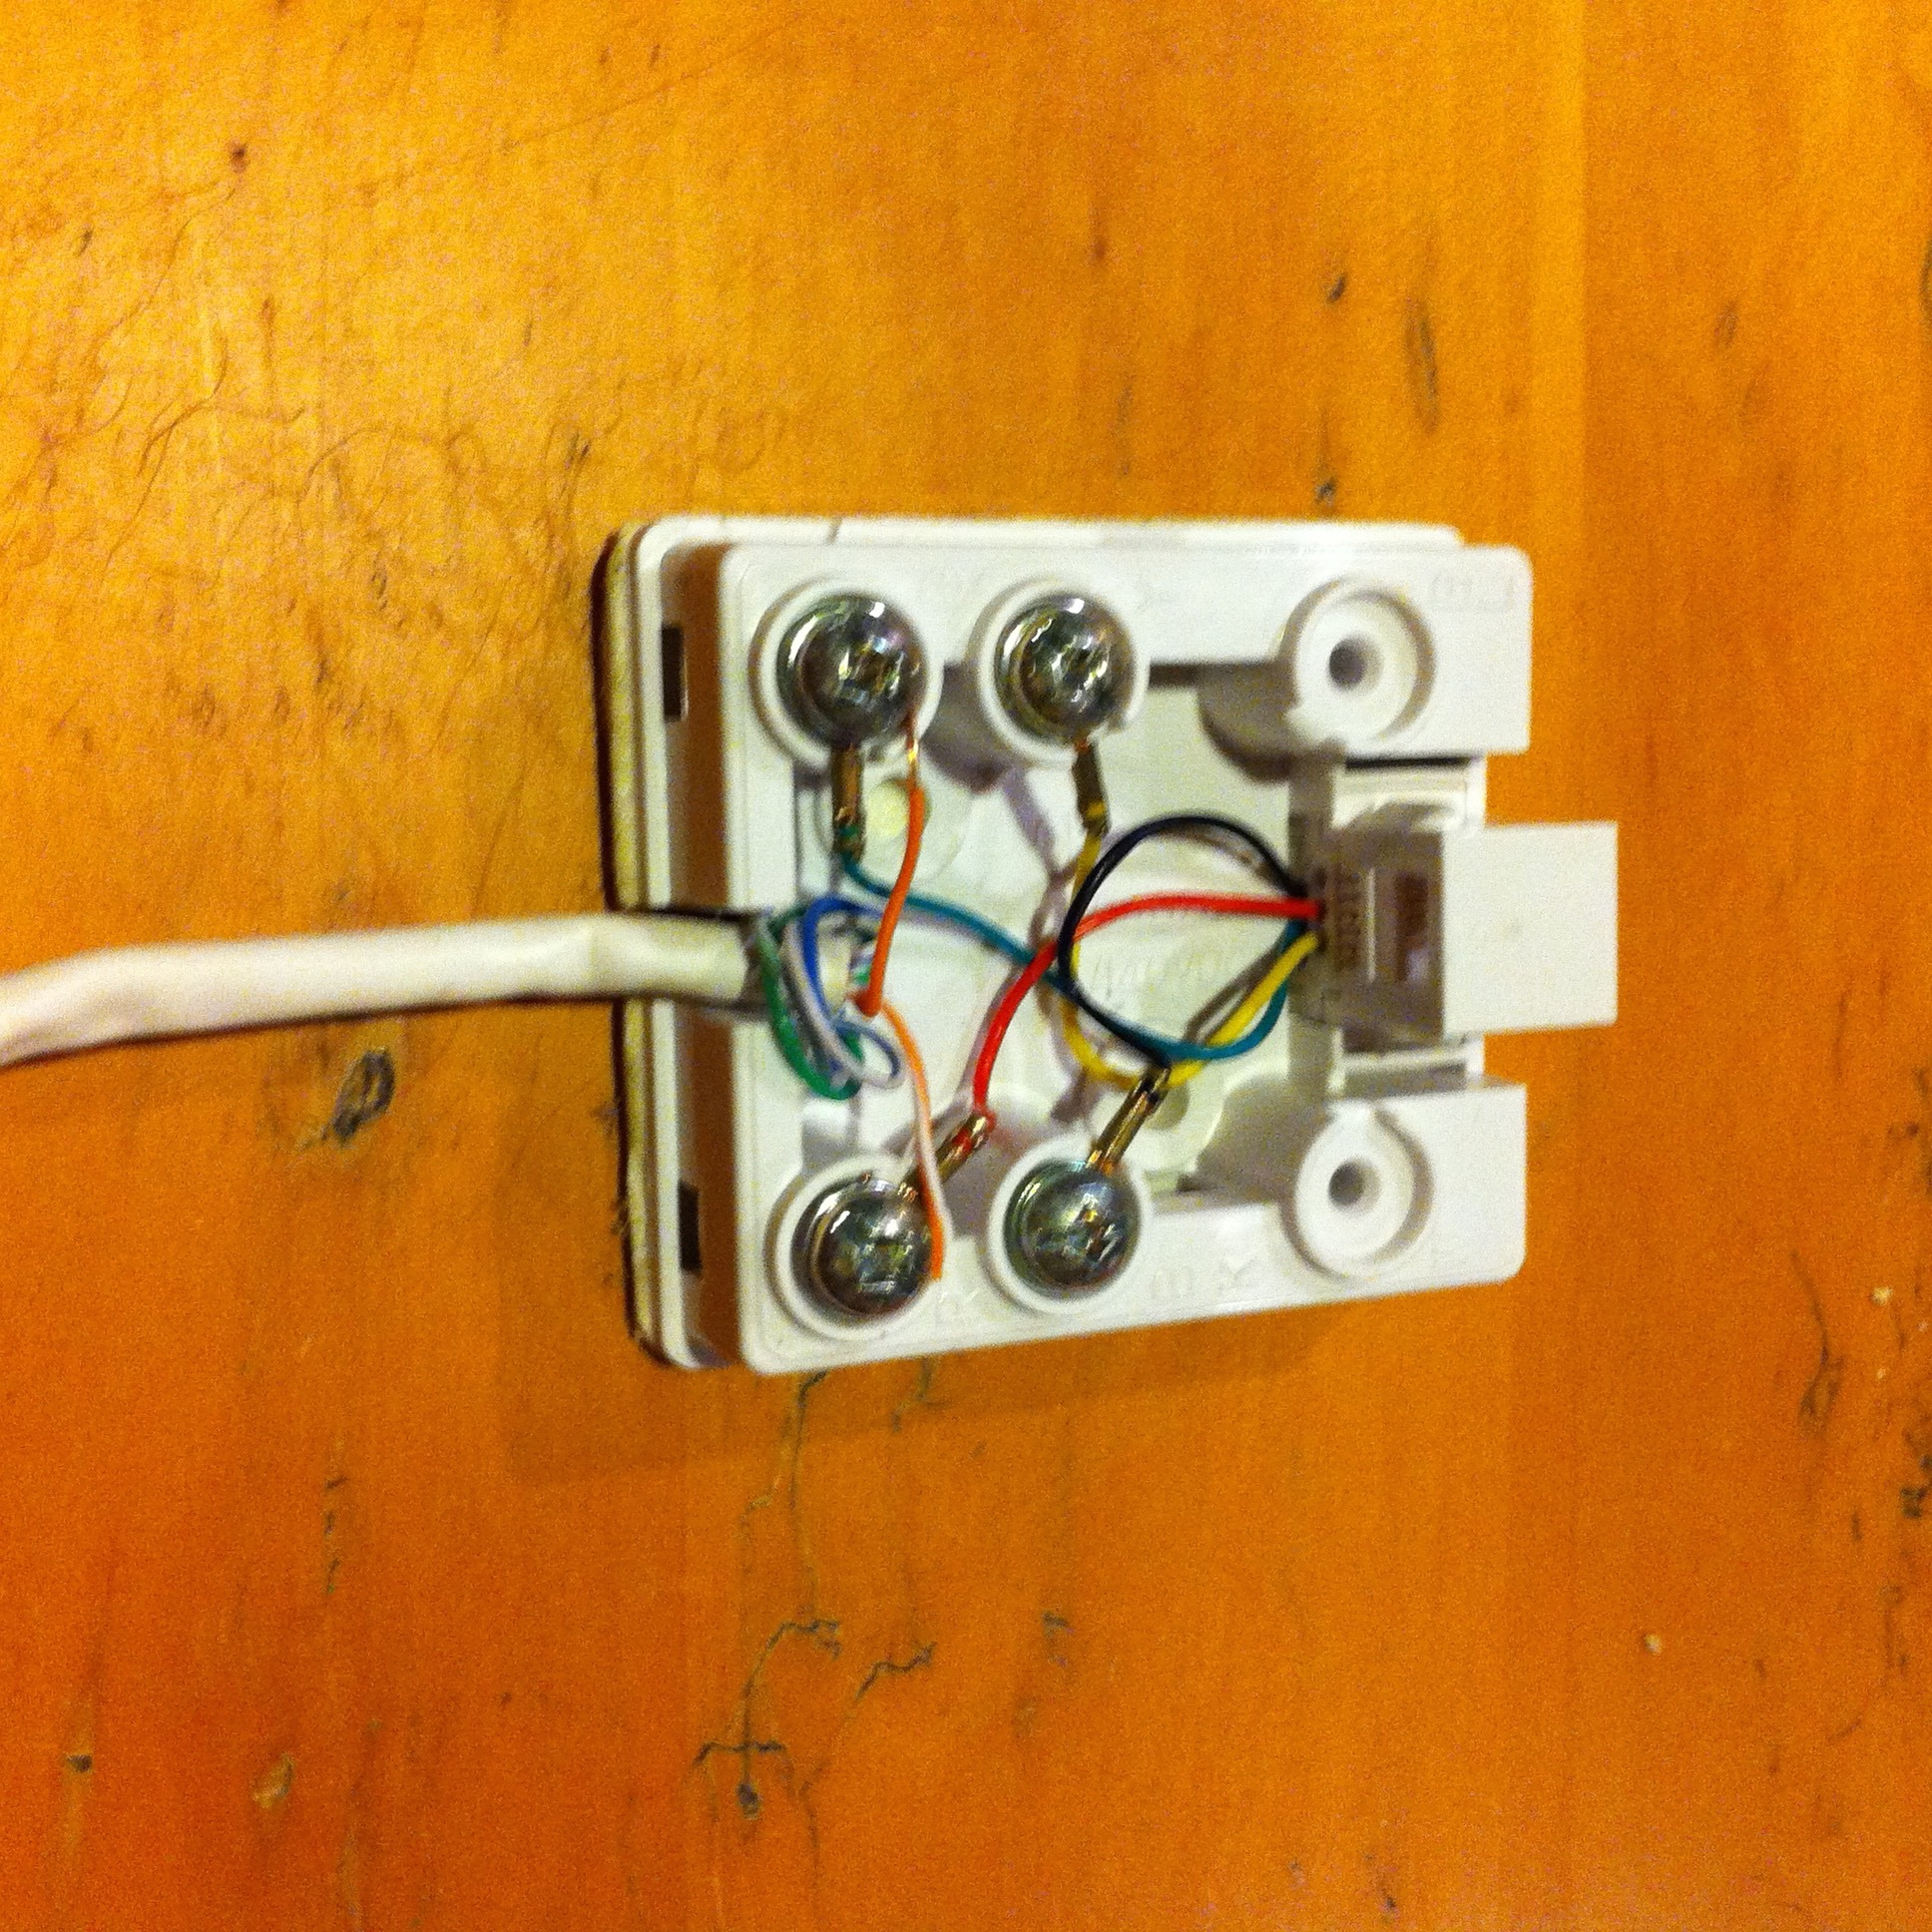 Image of the wiring inside a phone jack